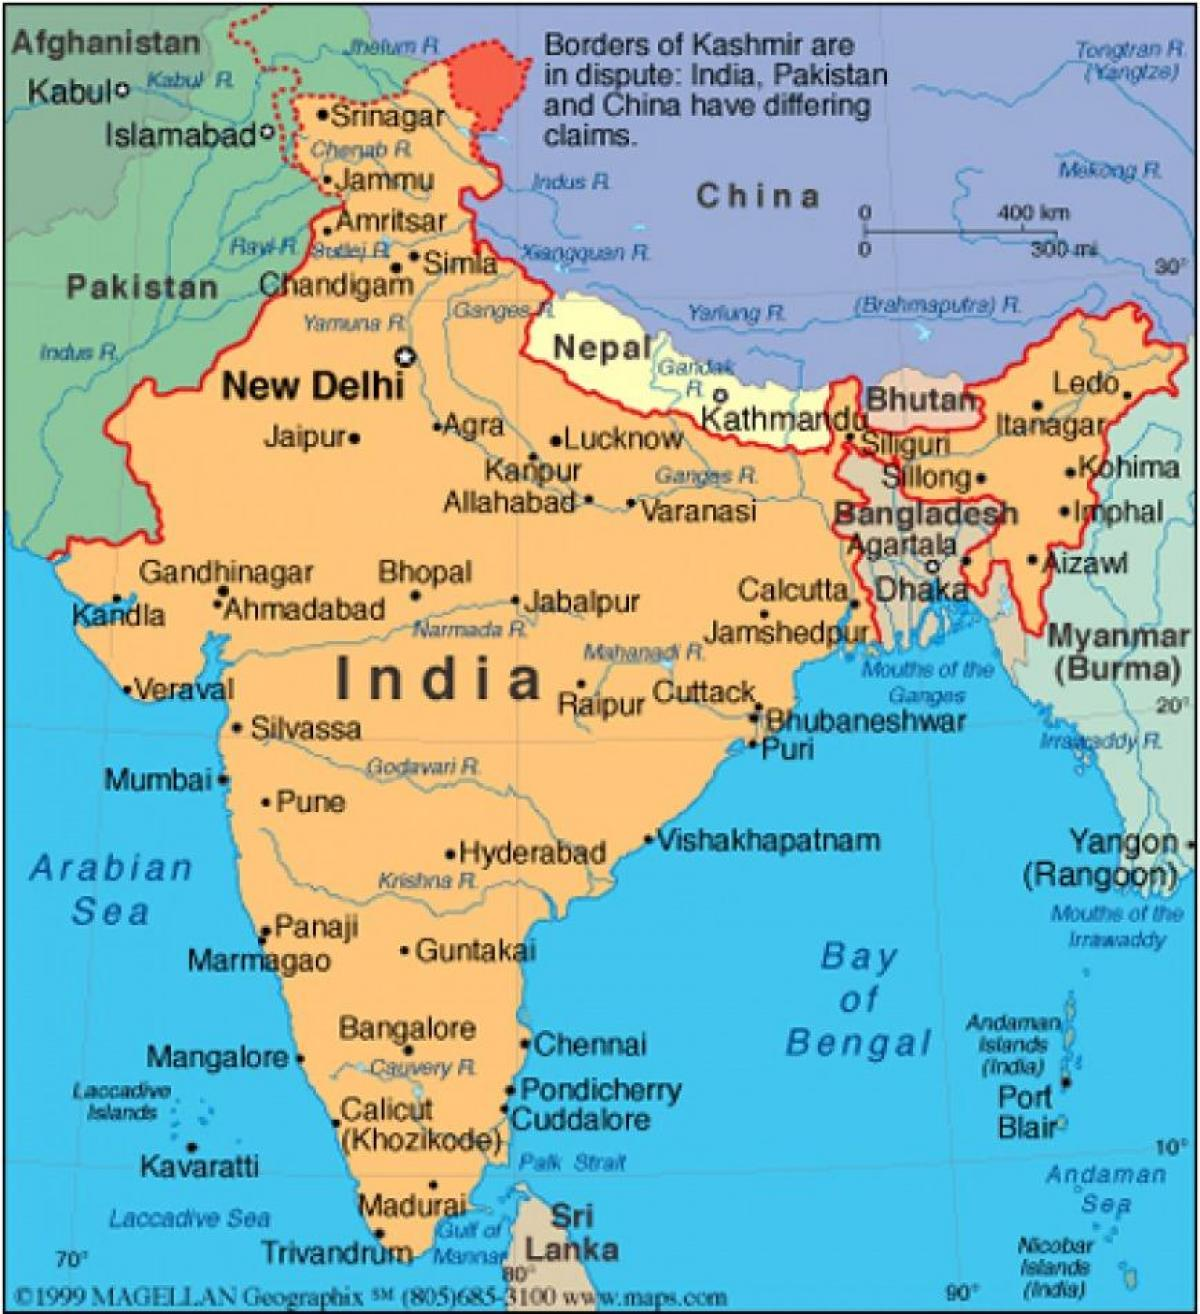 India political and adjacent countries map - Map of India ... on political map of crimea, political map of maldives, political map of cayman islands, political map of western sahara, political map of marshall islands, political map of the ivory coast, political map of the arabian sea, political map of indus river, political map of the british isles, political map of the soviet union, political map of republic of congo, political map of réunion, political map of arab countries, political map of cyprus, political map of malaysia, political map of montserrat, political map of west bank, political map of southeast europe, political map of mekong river, political map of u s a,